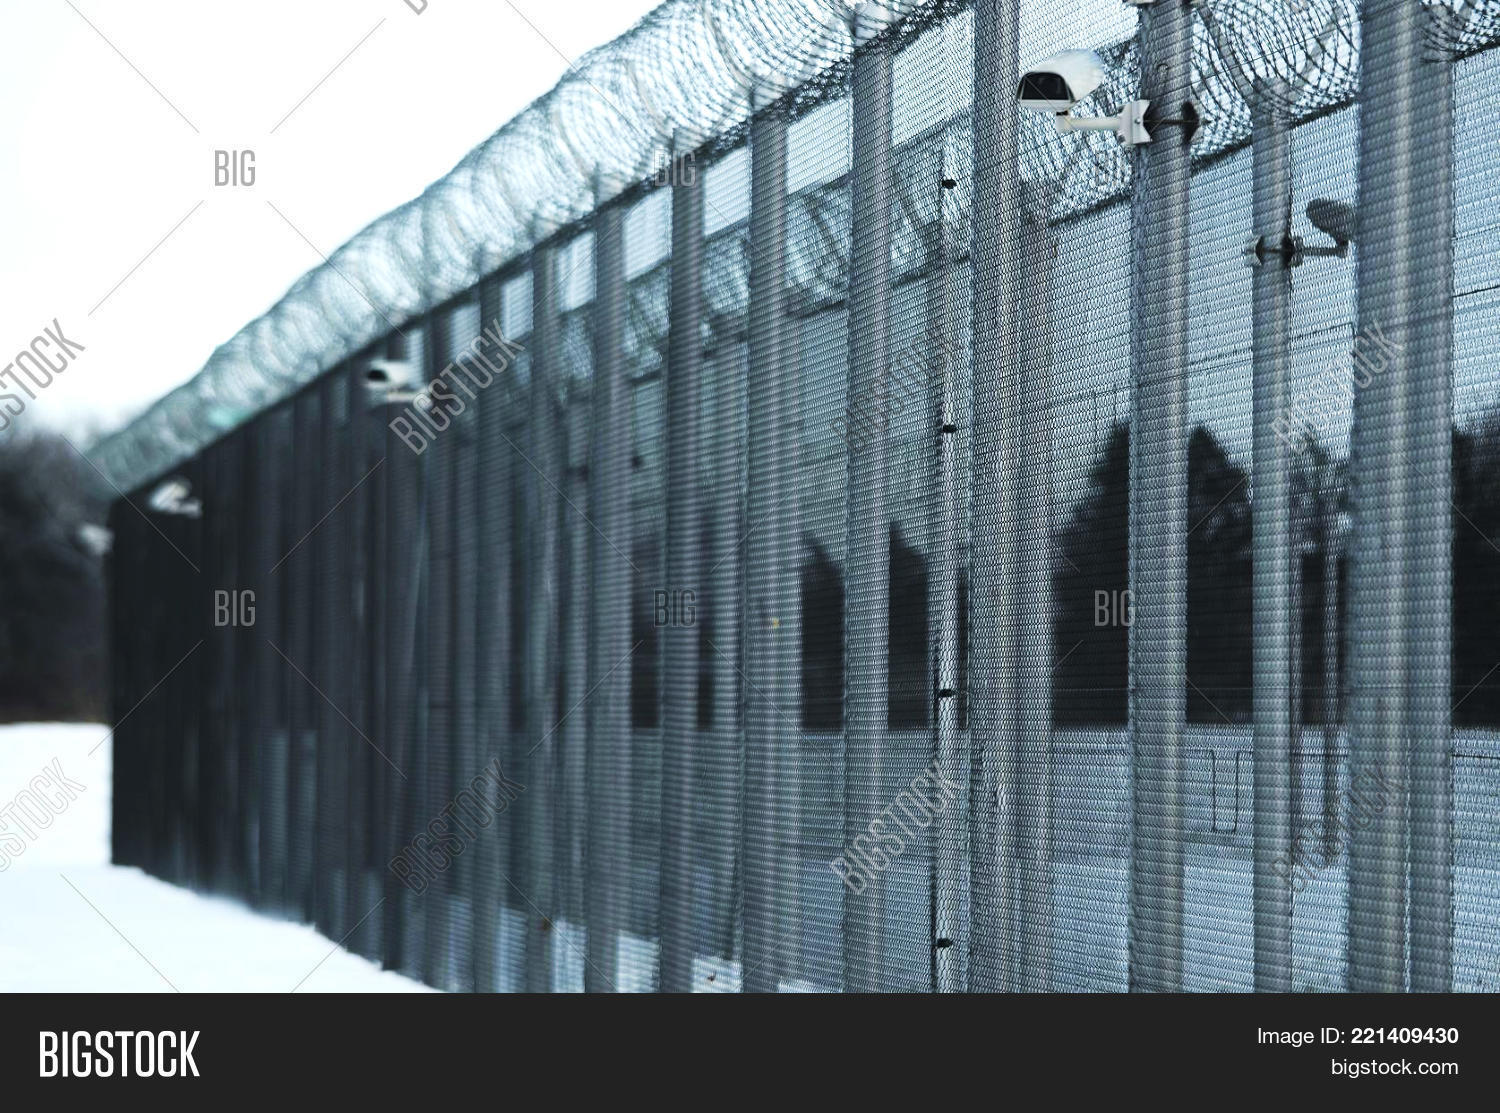 Prison fence security image photo free trial bigstock